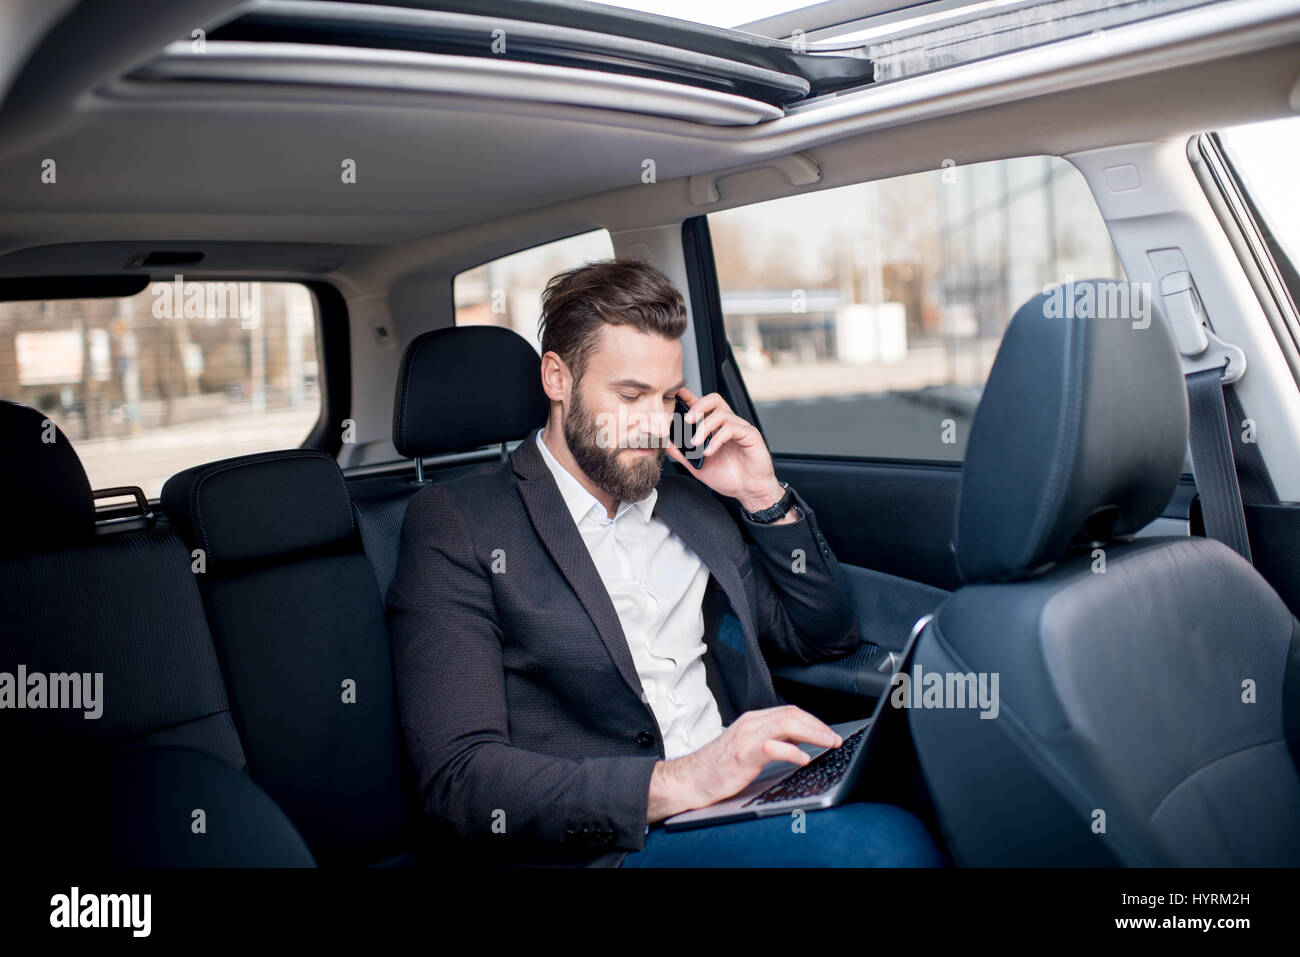 Businessman in the car - Stock Image